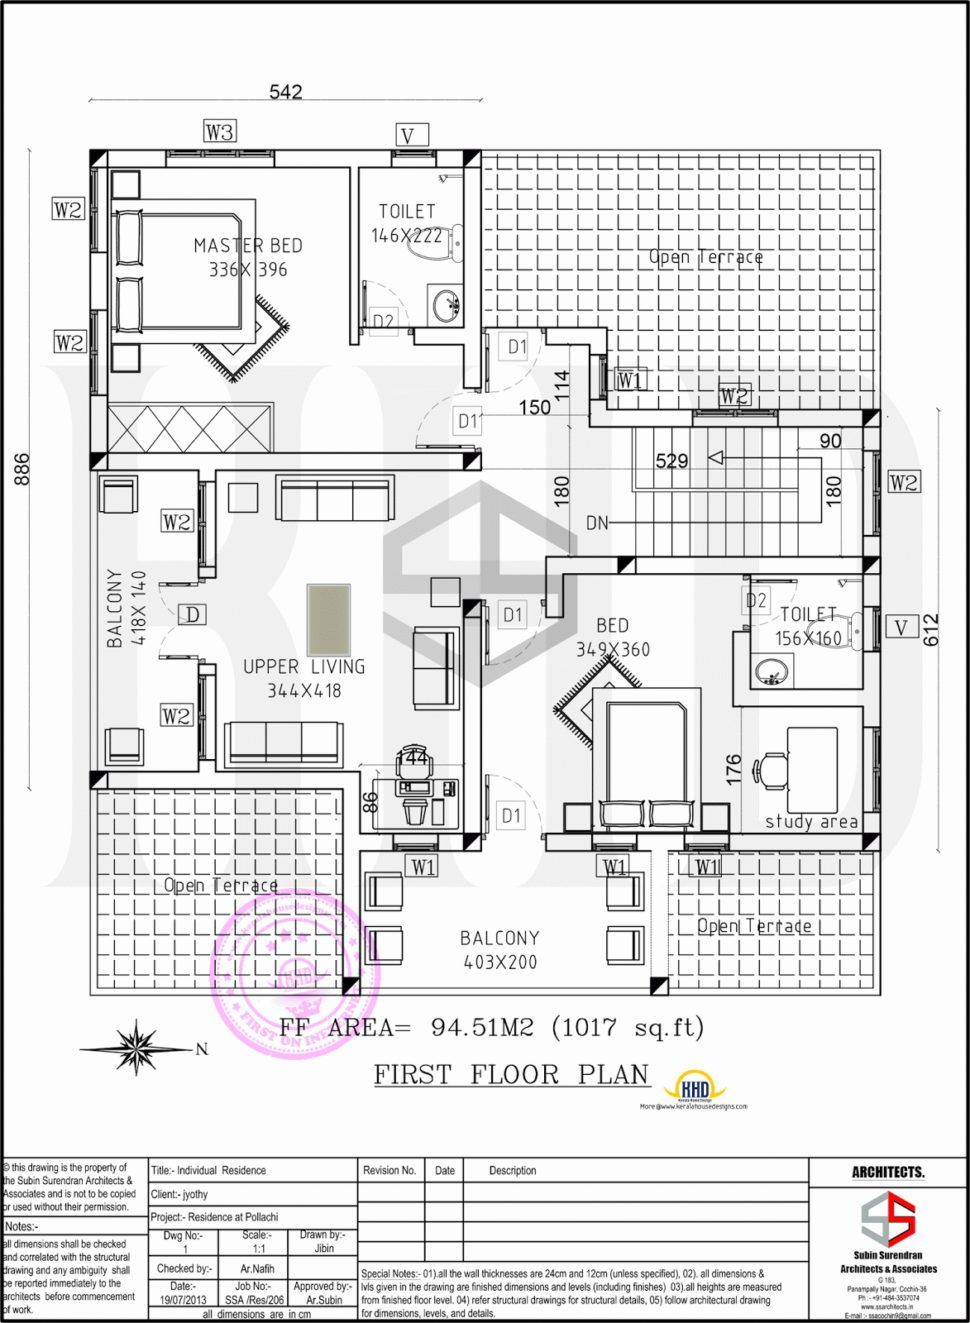 Beau Are You Looking For Home Design Concepts? If So, This Board Is Perfect For